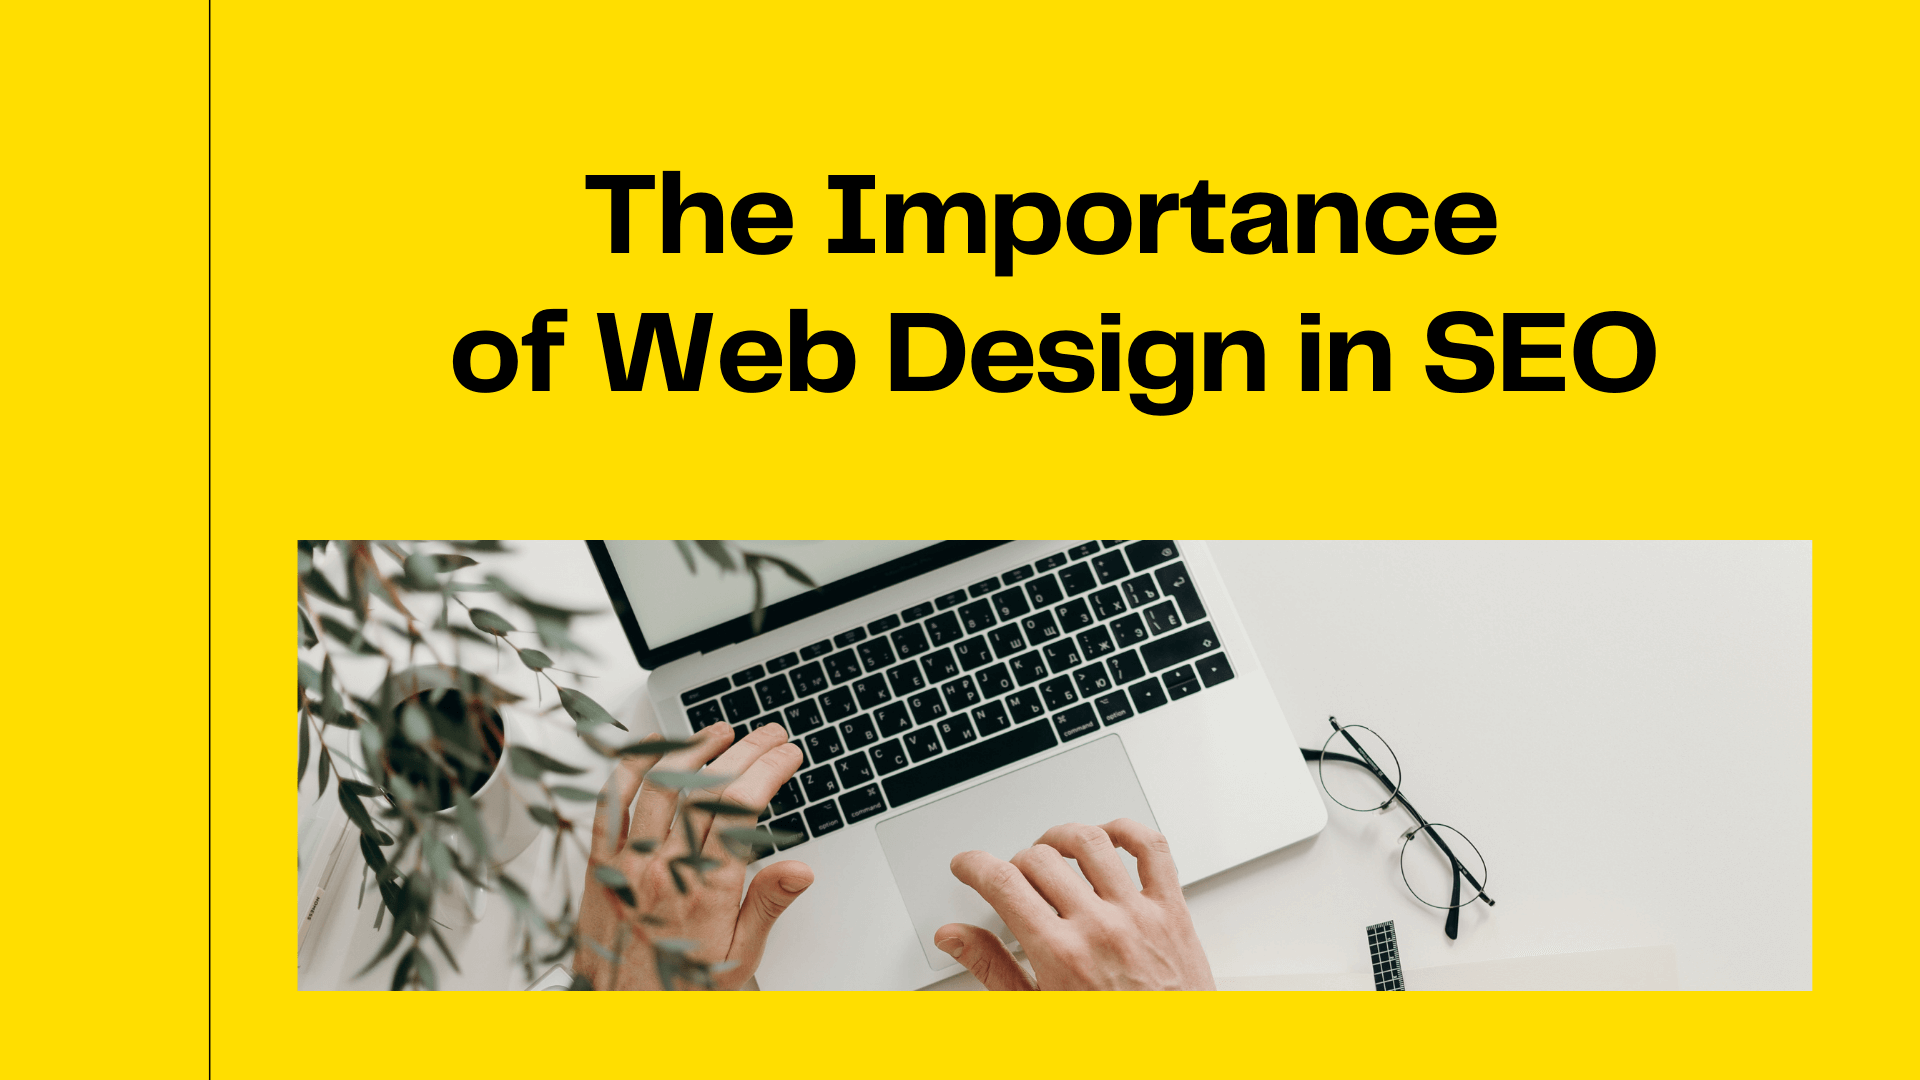 The Importance of Web Design in SEO